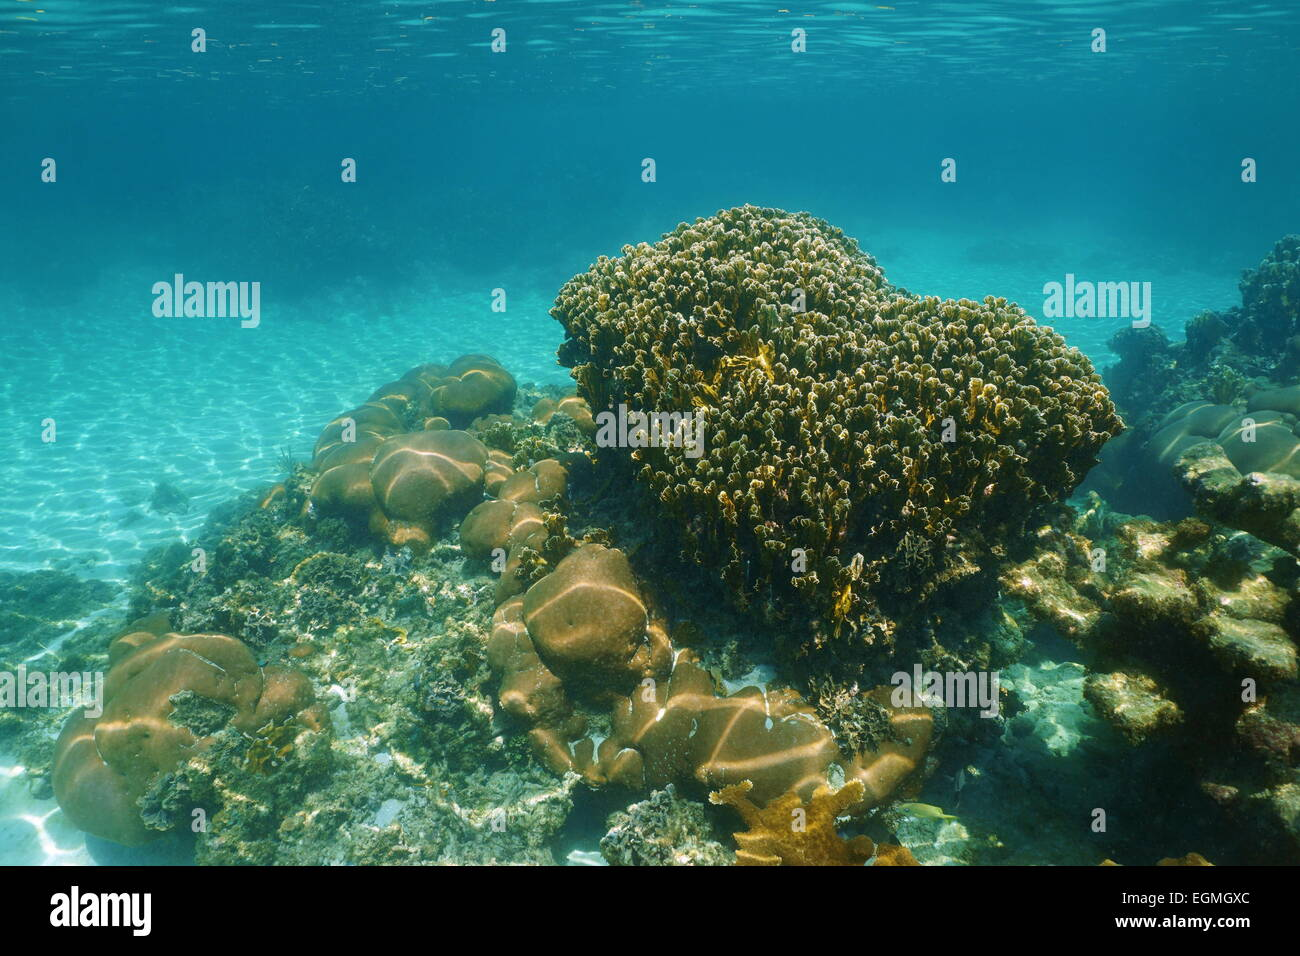 Underwater scenery of a stony coral reef in the Caribbean sea - Stock Image